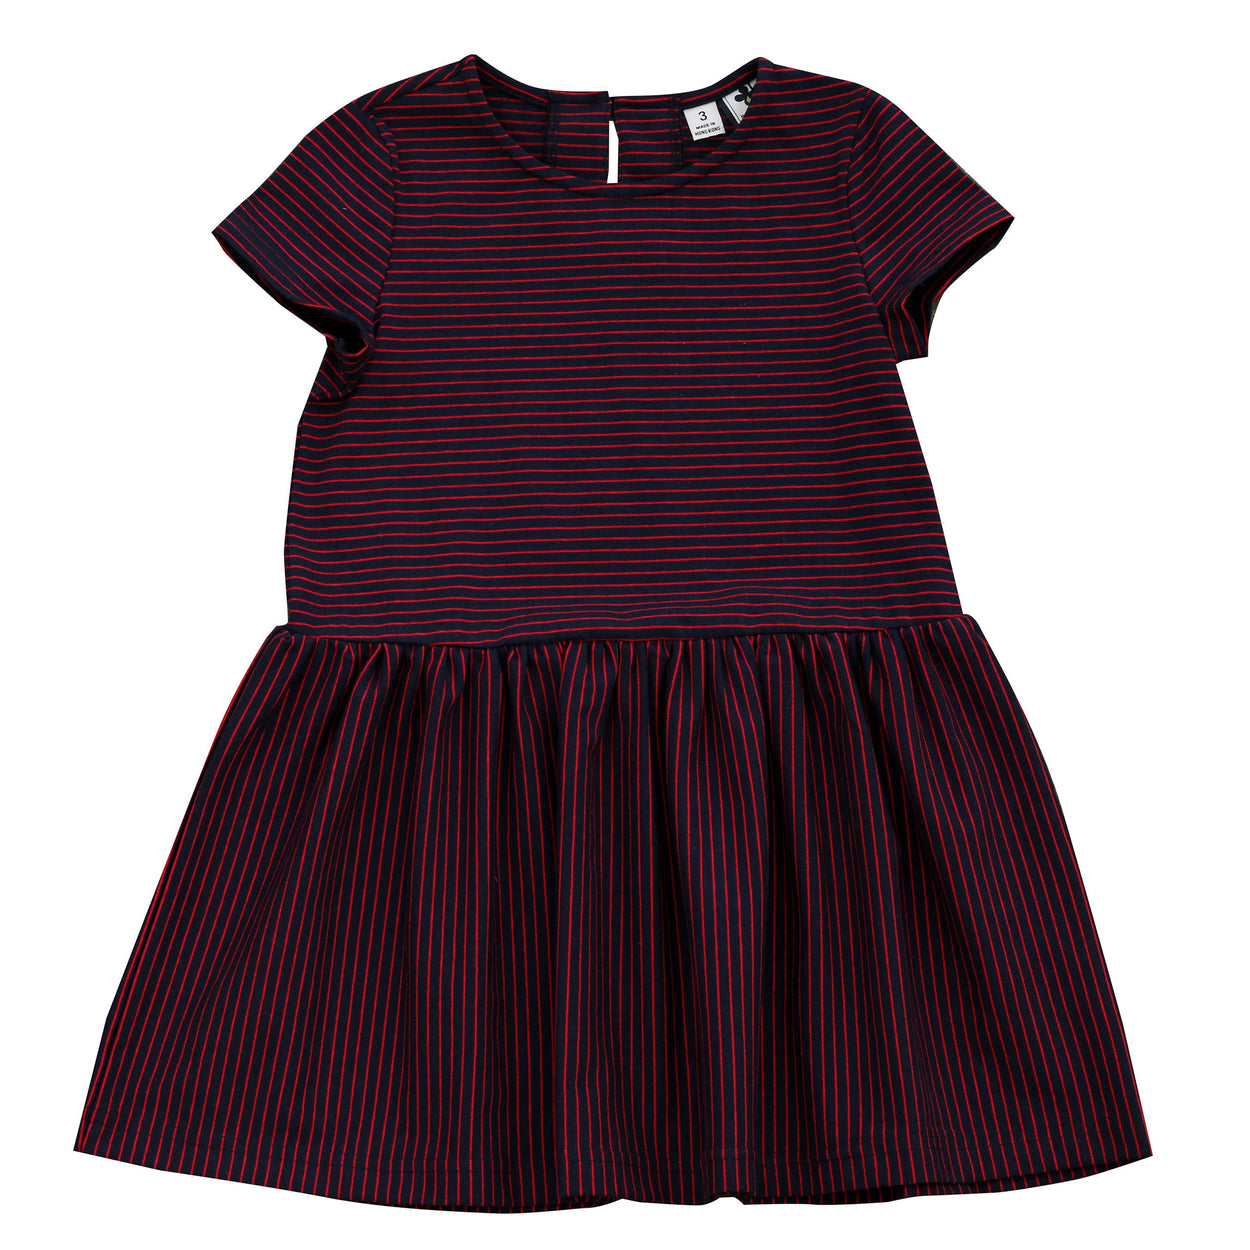 palmer dropwaist dress mini red navy stripe